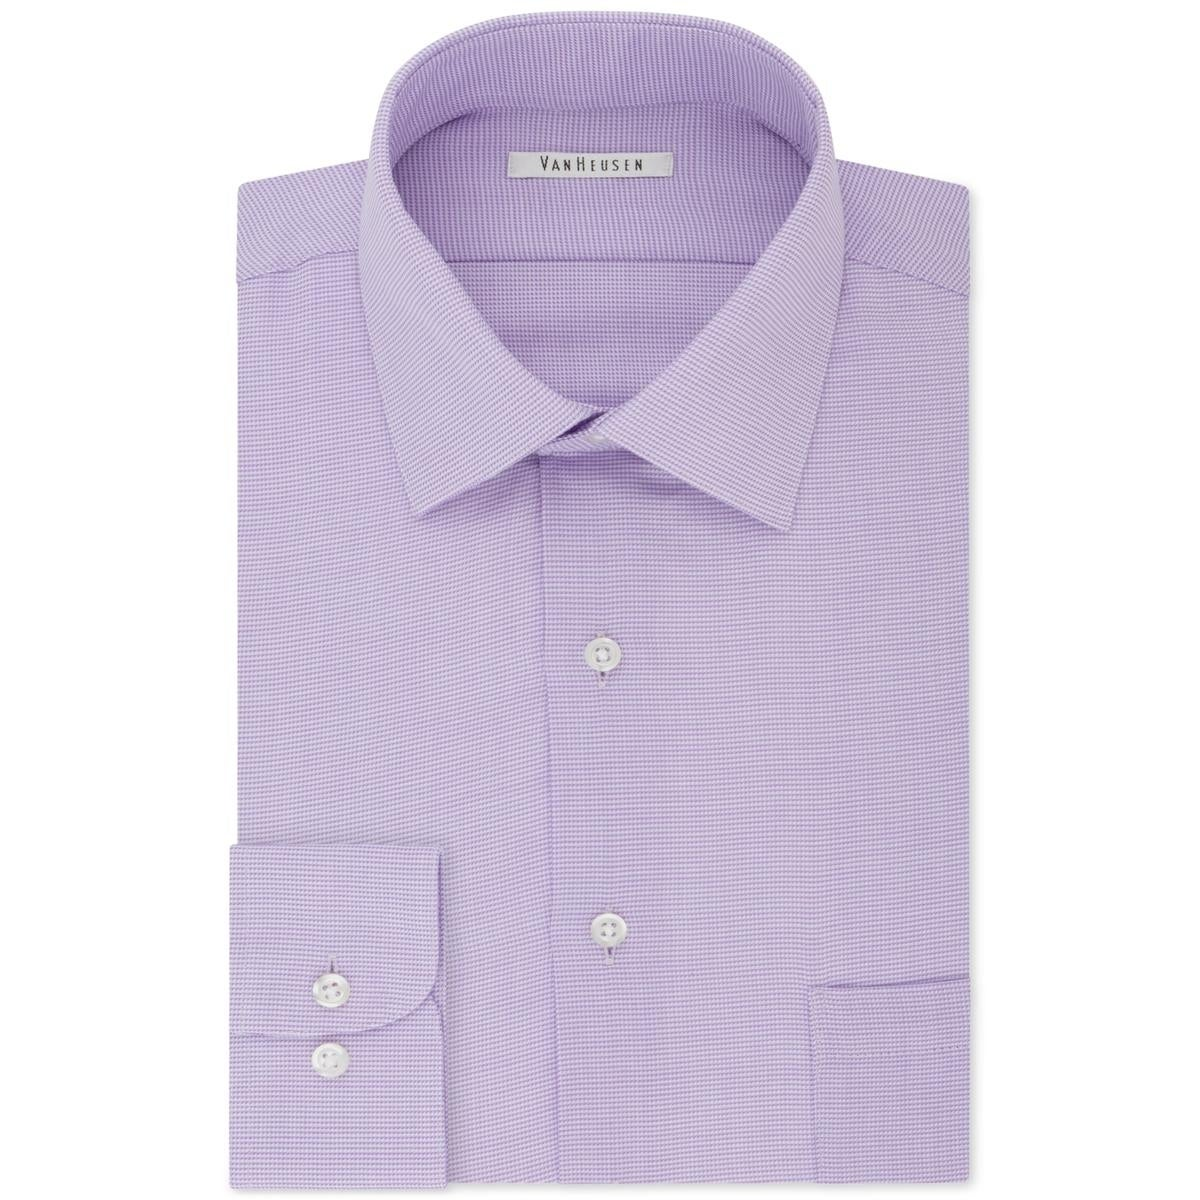 d2d8ea9b Shop Van Heusen Mens Dobby Button-Down Shirt Regular Fit Micro Houndstooth  Purple - 16 34/35 - Free Shipping On Orders Over $45 - Overstock - 26282638